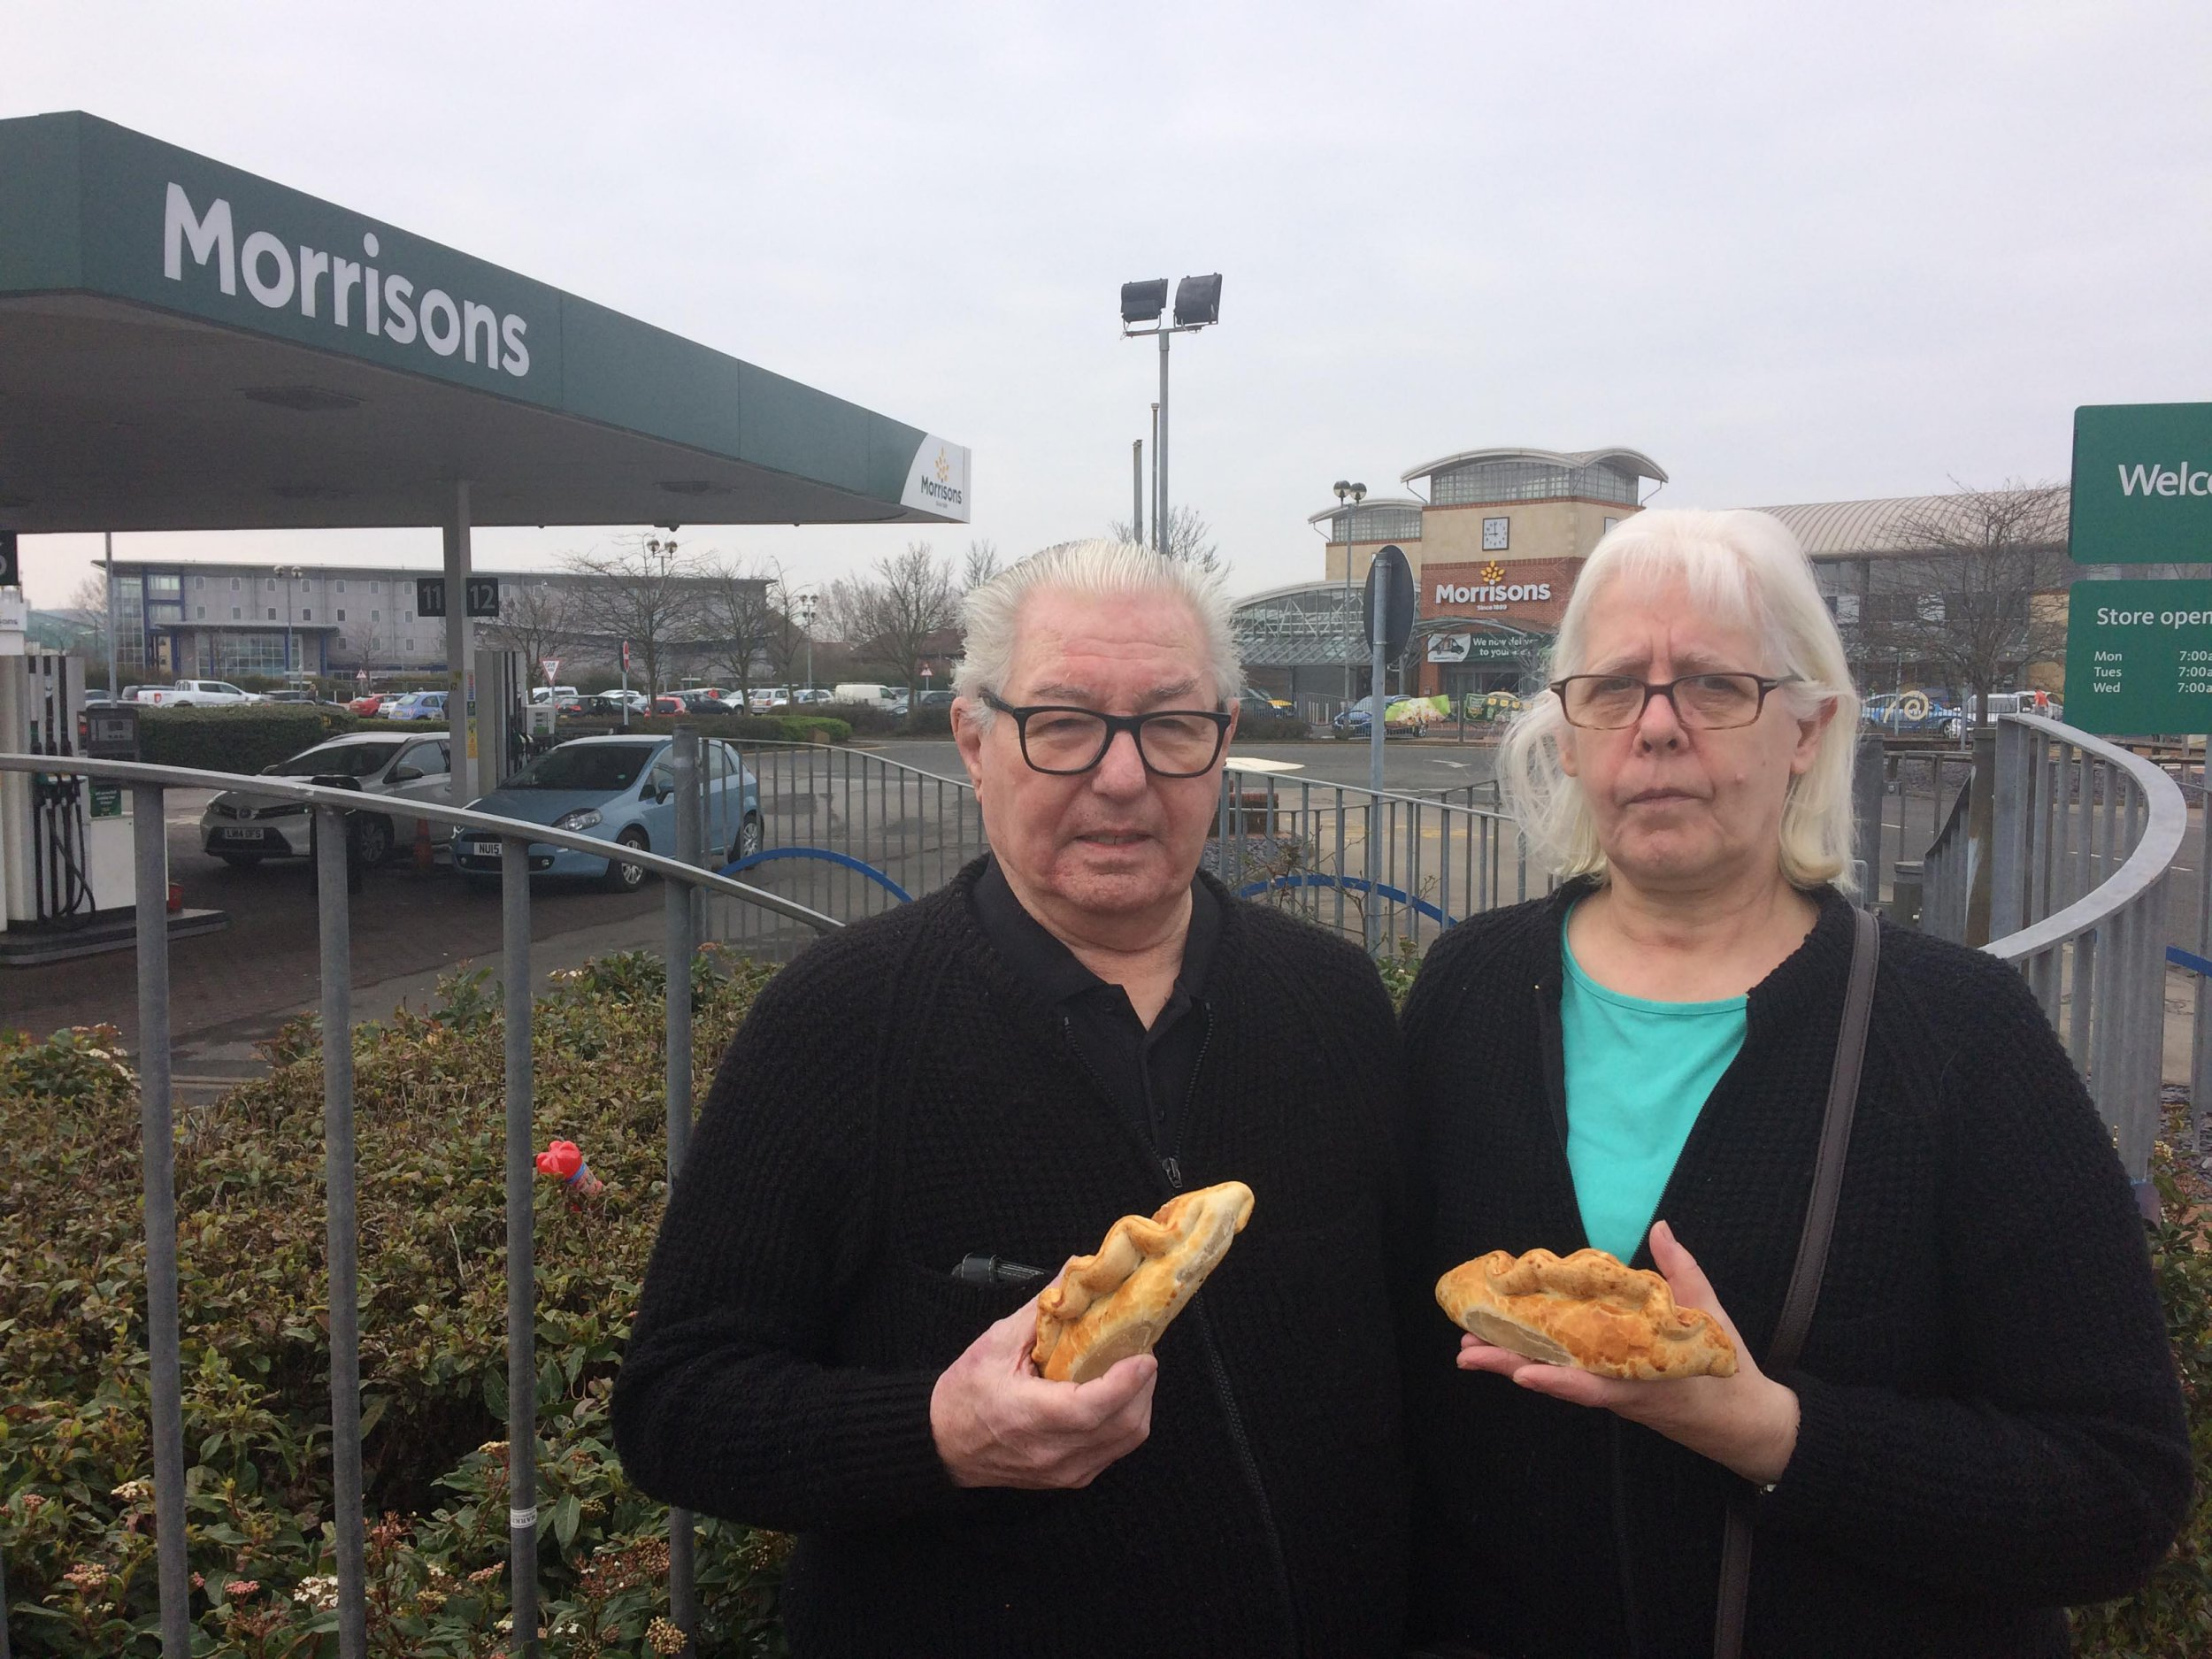 Linda and Tony Gilkes, from Thorntree, were refused meat pies before 9am in Berwick Hills Morrisons, Middlesbrough - It should have been a simple case of pie and sell. But Linda and Tony Gilkes were left piping hot with fury after their local??Morrisons??refused to sell them meat pies before 9am. ???I wanted eight large sausage rolls and two steak bakes,??? said Linda, 62, from Thorntree. ???It was 8.45am and there were no pies at all displayed. ???I could see bags and bags of pies, all wrapped up on cages behind the counter. The trolley was ready to be pushed out. ???But when I asked for the pies, I was told: ???We can???t sell the pies until 9am???. I could have had a fruit pie, but not a meat pie.??? ???I wanted eight large sausage rolls and two steak bakes,??? said Linda, 62, from Thorntree. ???It was 8.45am and there were no pies at all displayed.